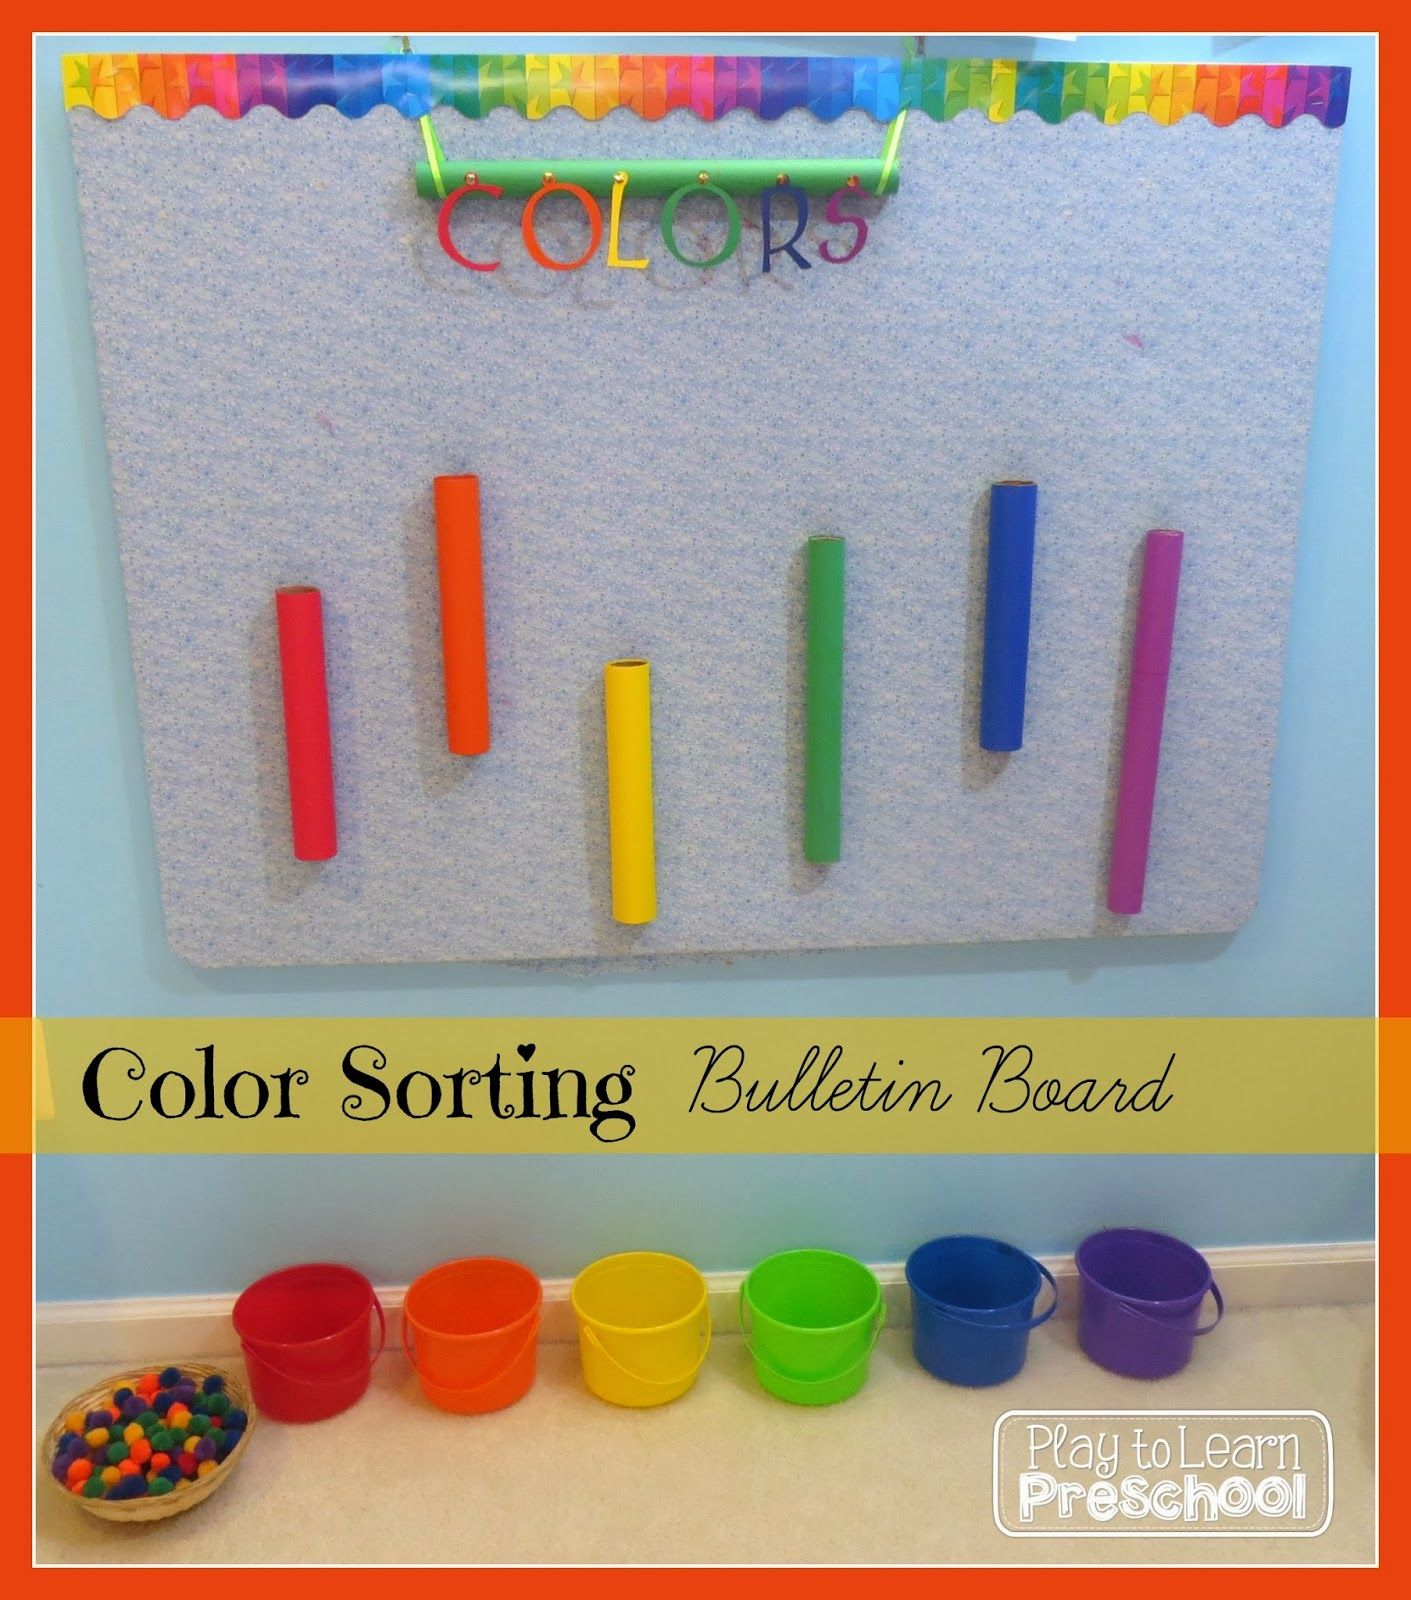 Colors preschool project - Color Sorting Bulletin Board From Play To Learn Preschool